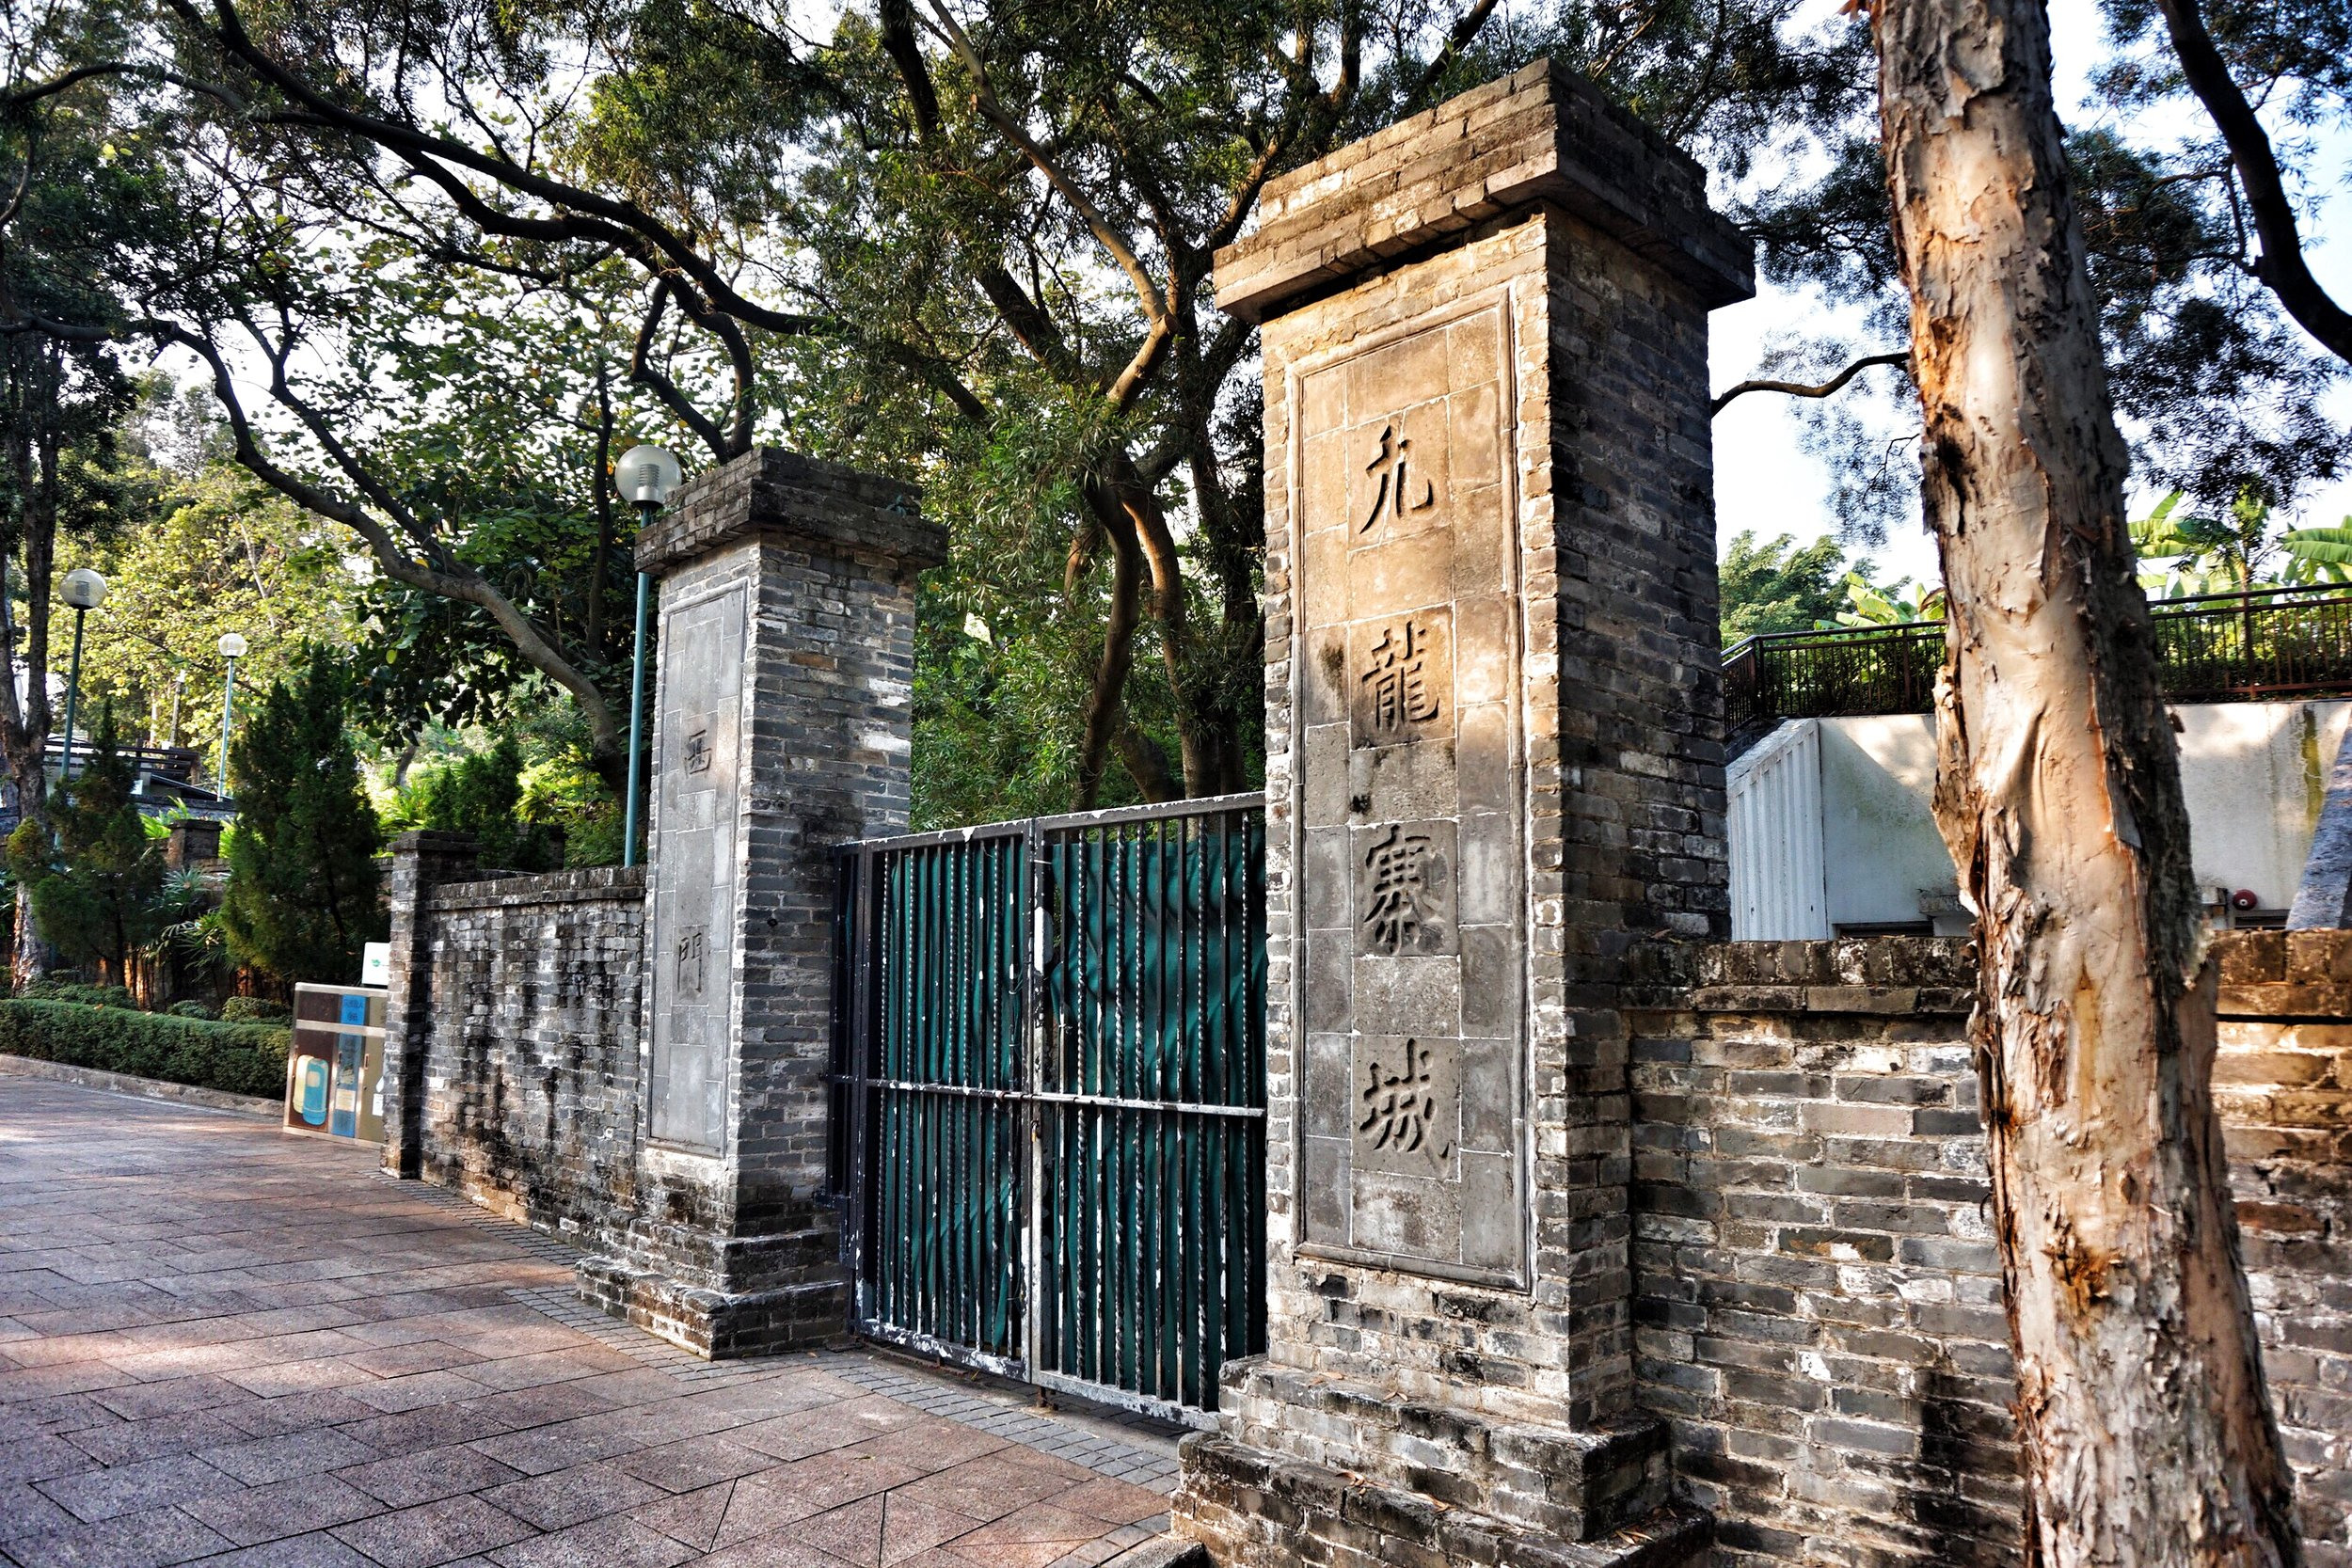 The original wall to the Kowloon Walled City was destroyed by the Japanese during the second world war. You will learn on your night tour what the wall was used for and how it was restored.